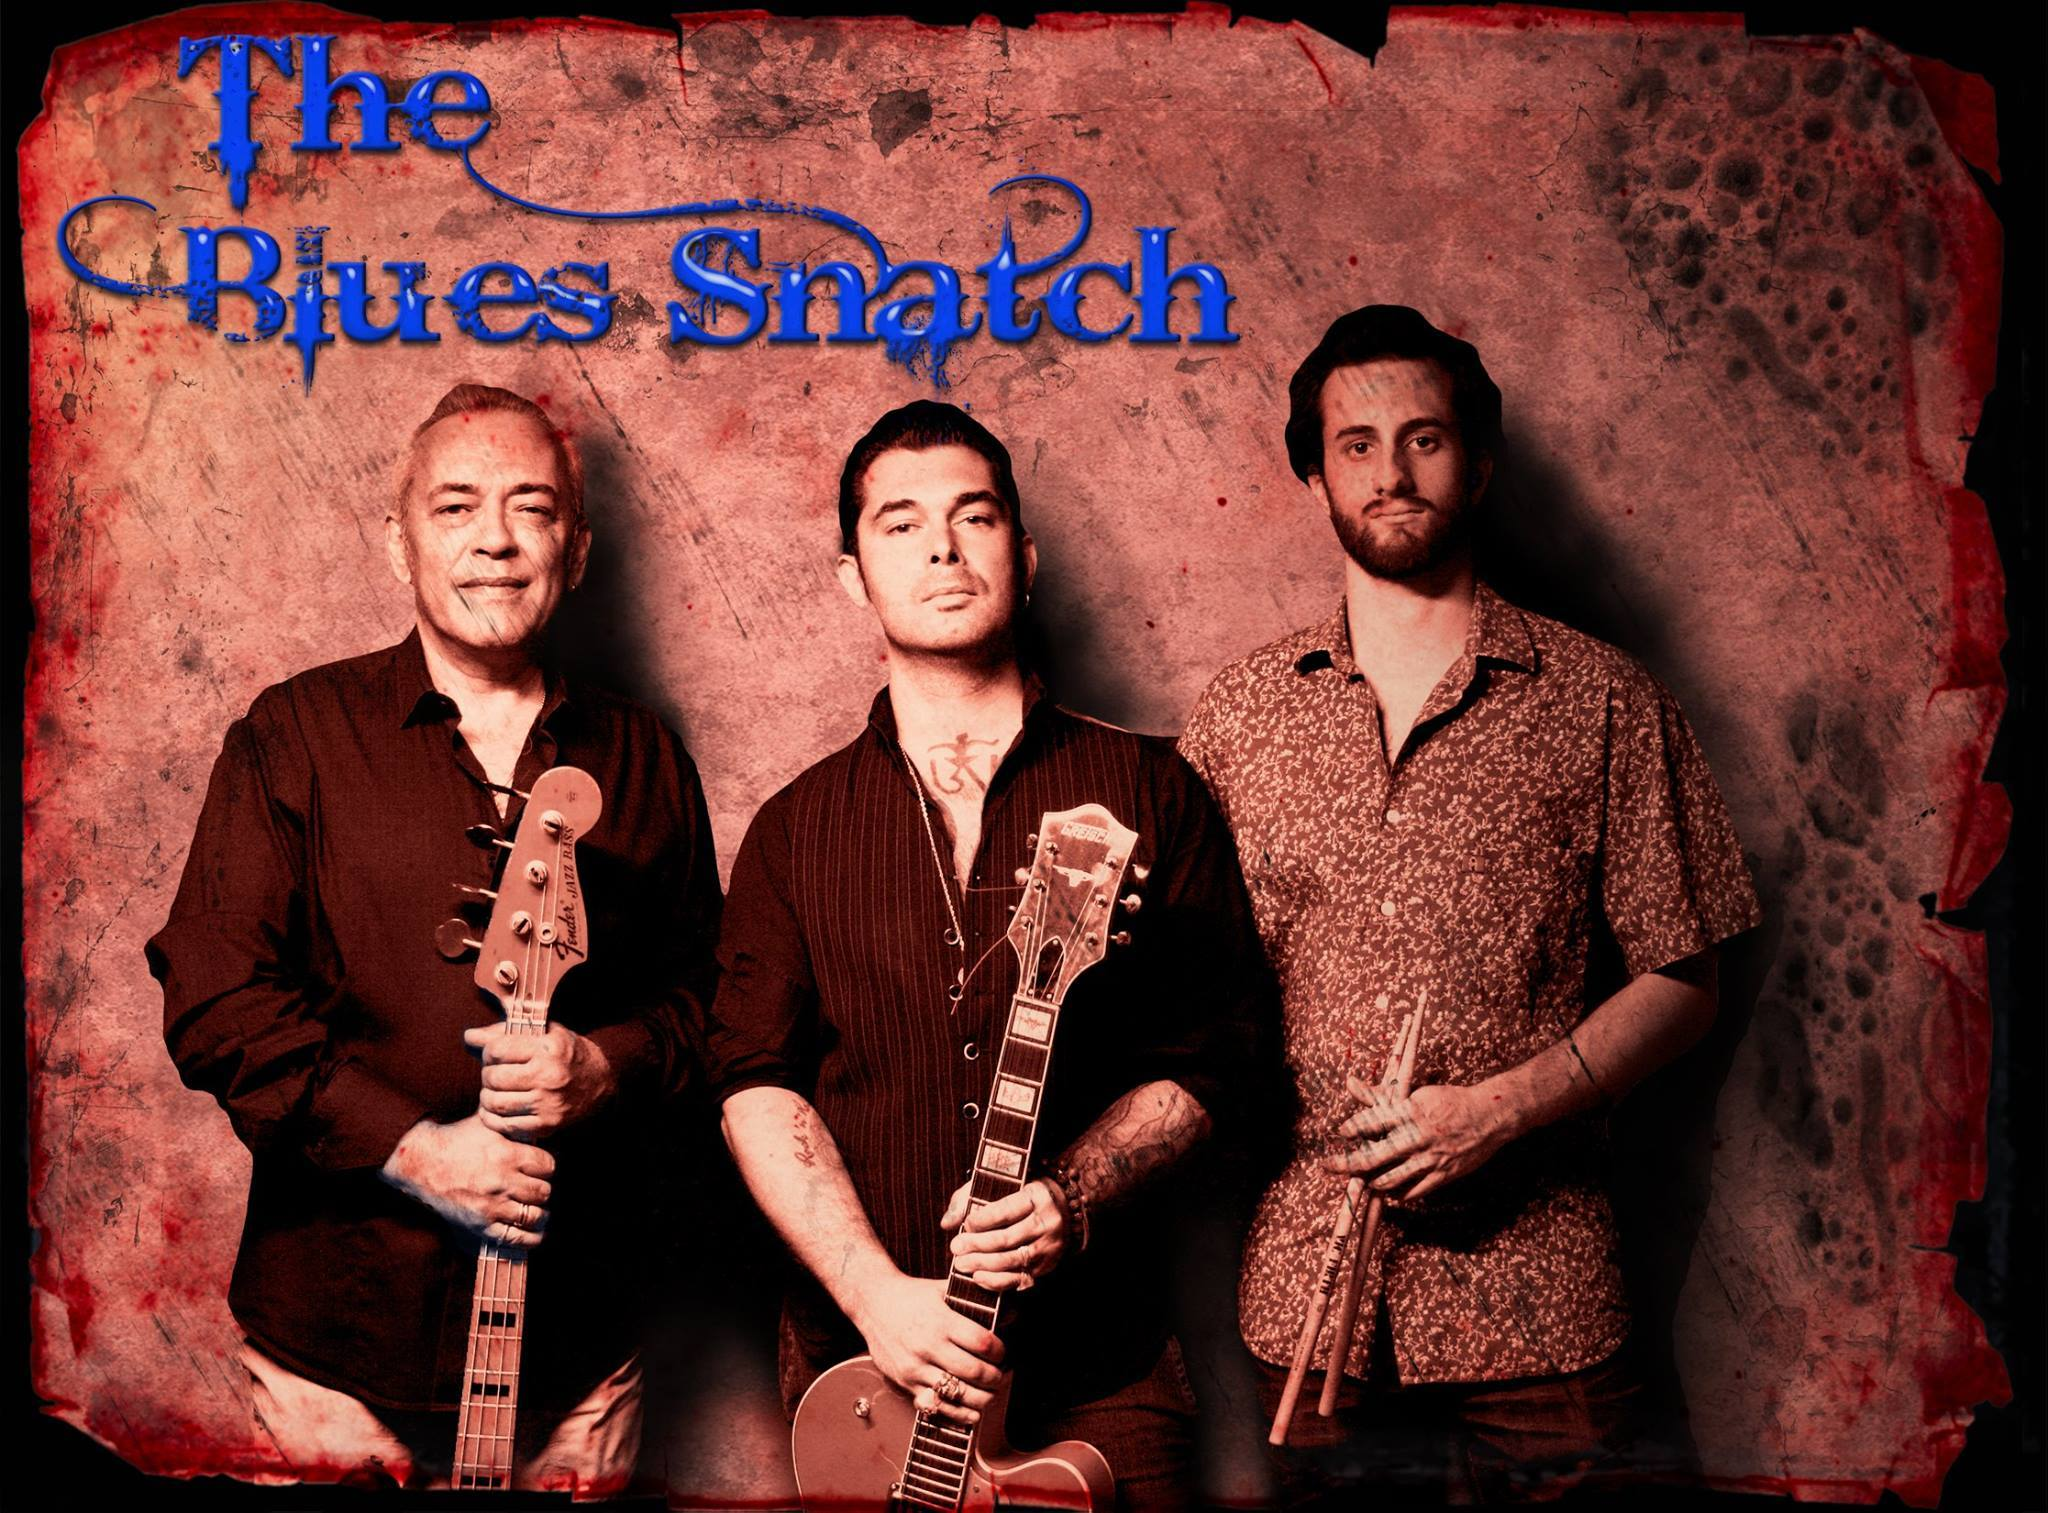 The BLUES SNATCH